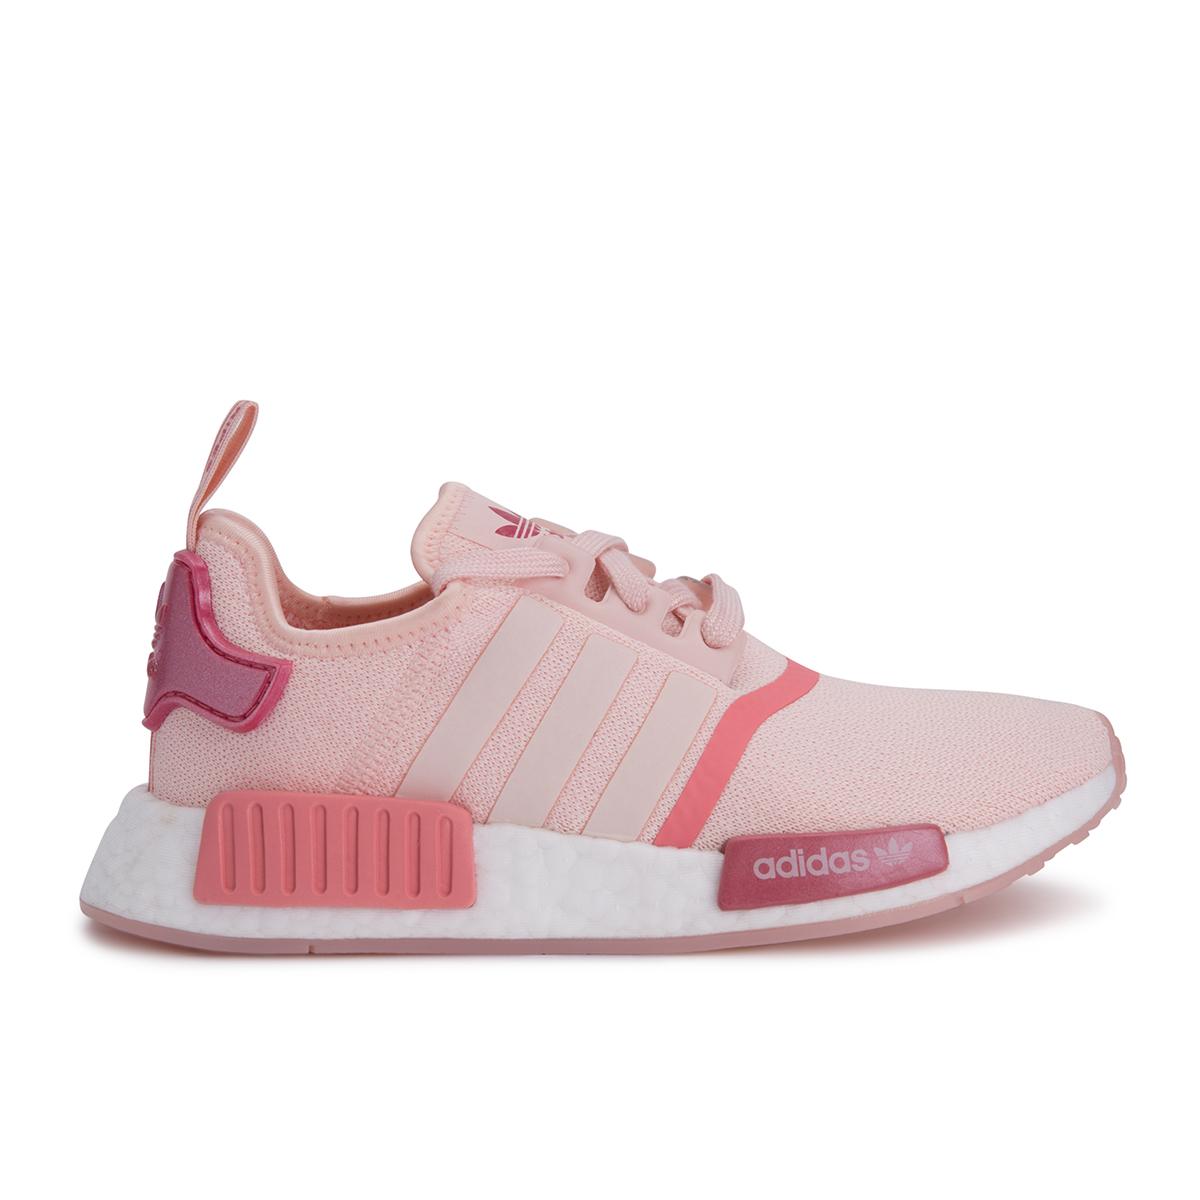 adidas nmd r1 womens pink and white